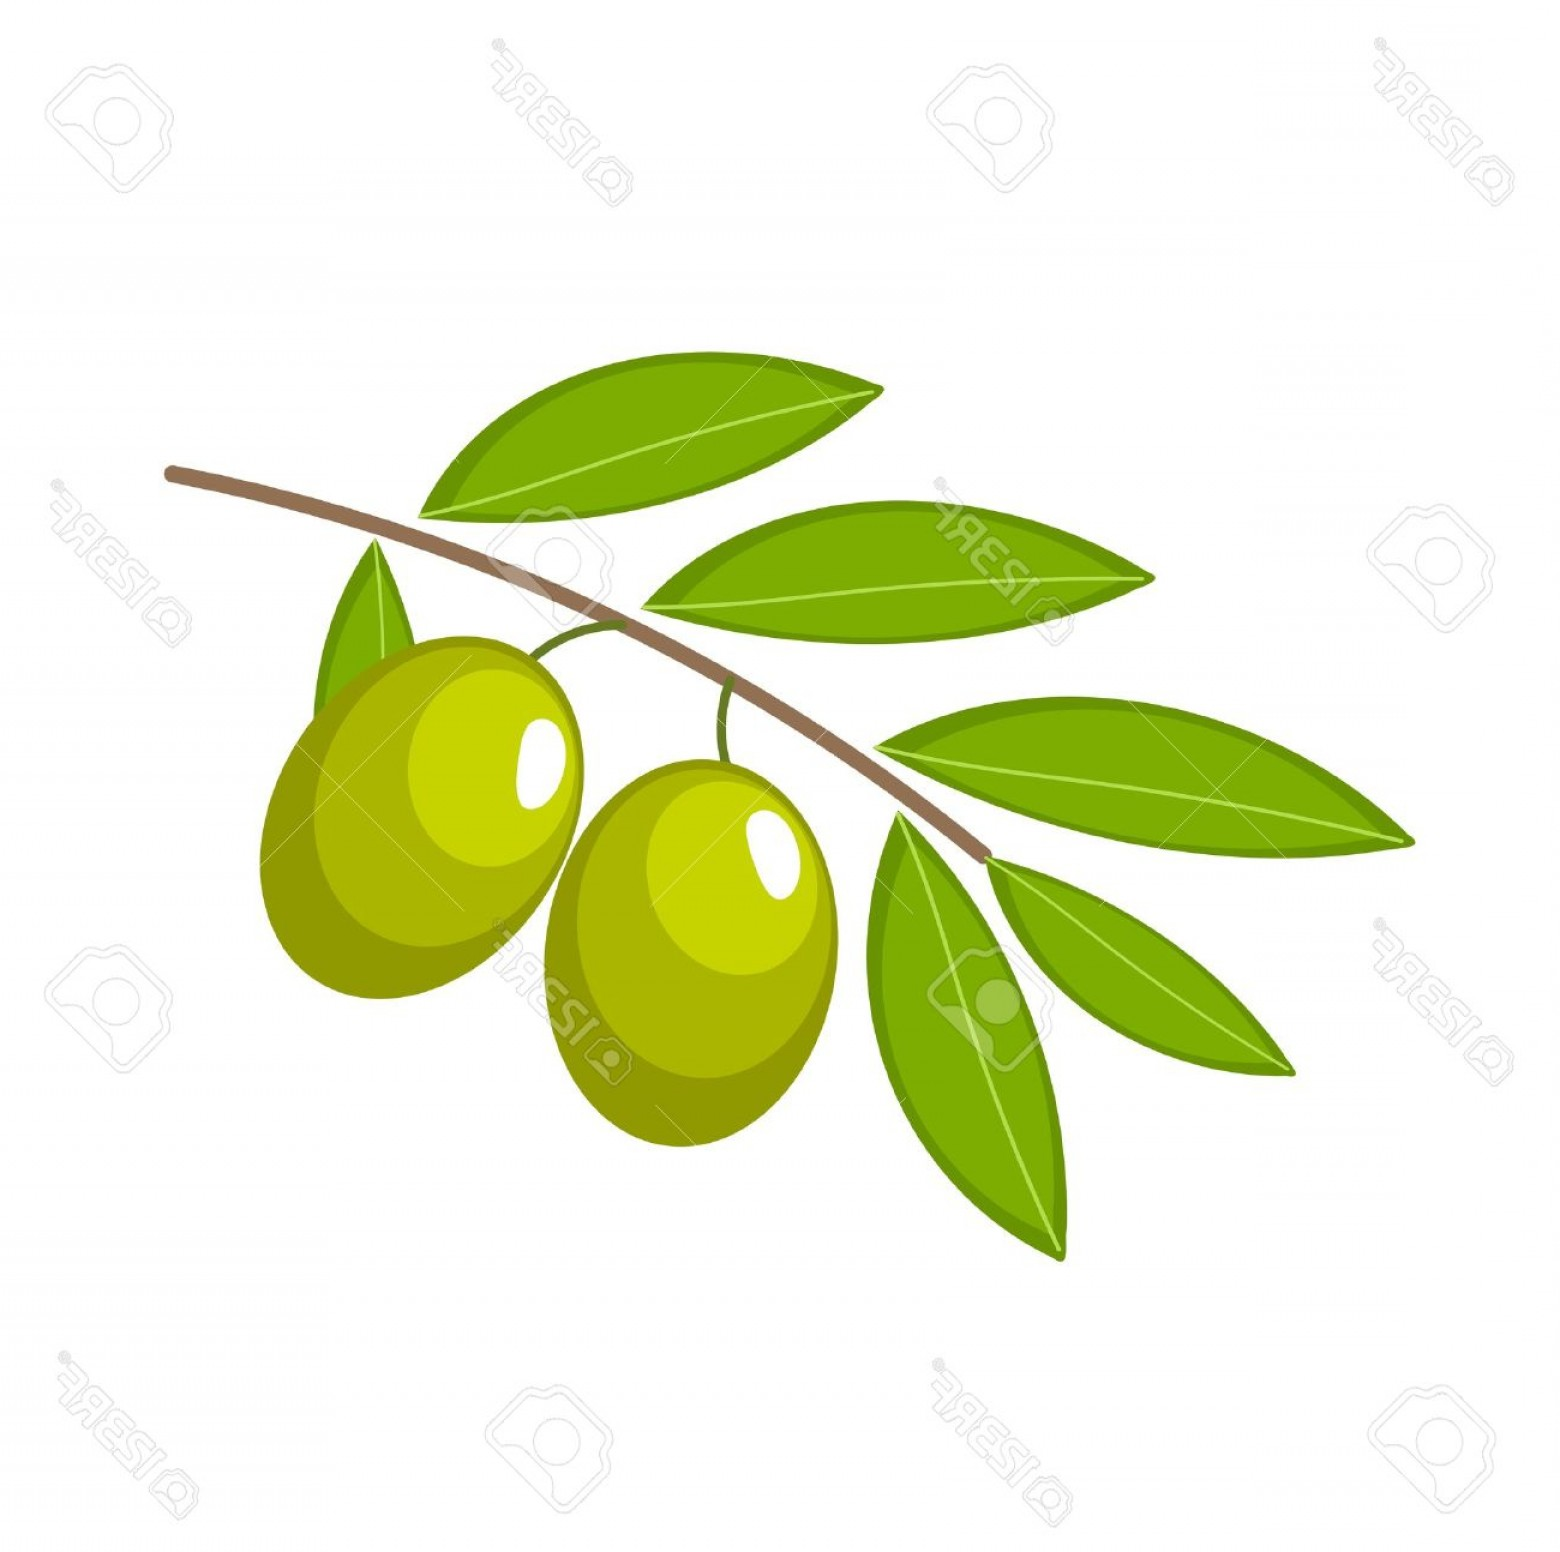 Olive Vector: Photobranch With Green Olives Vector Illustration